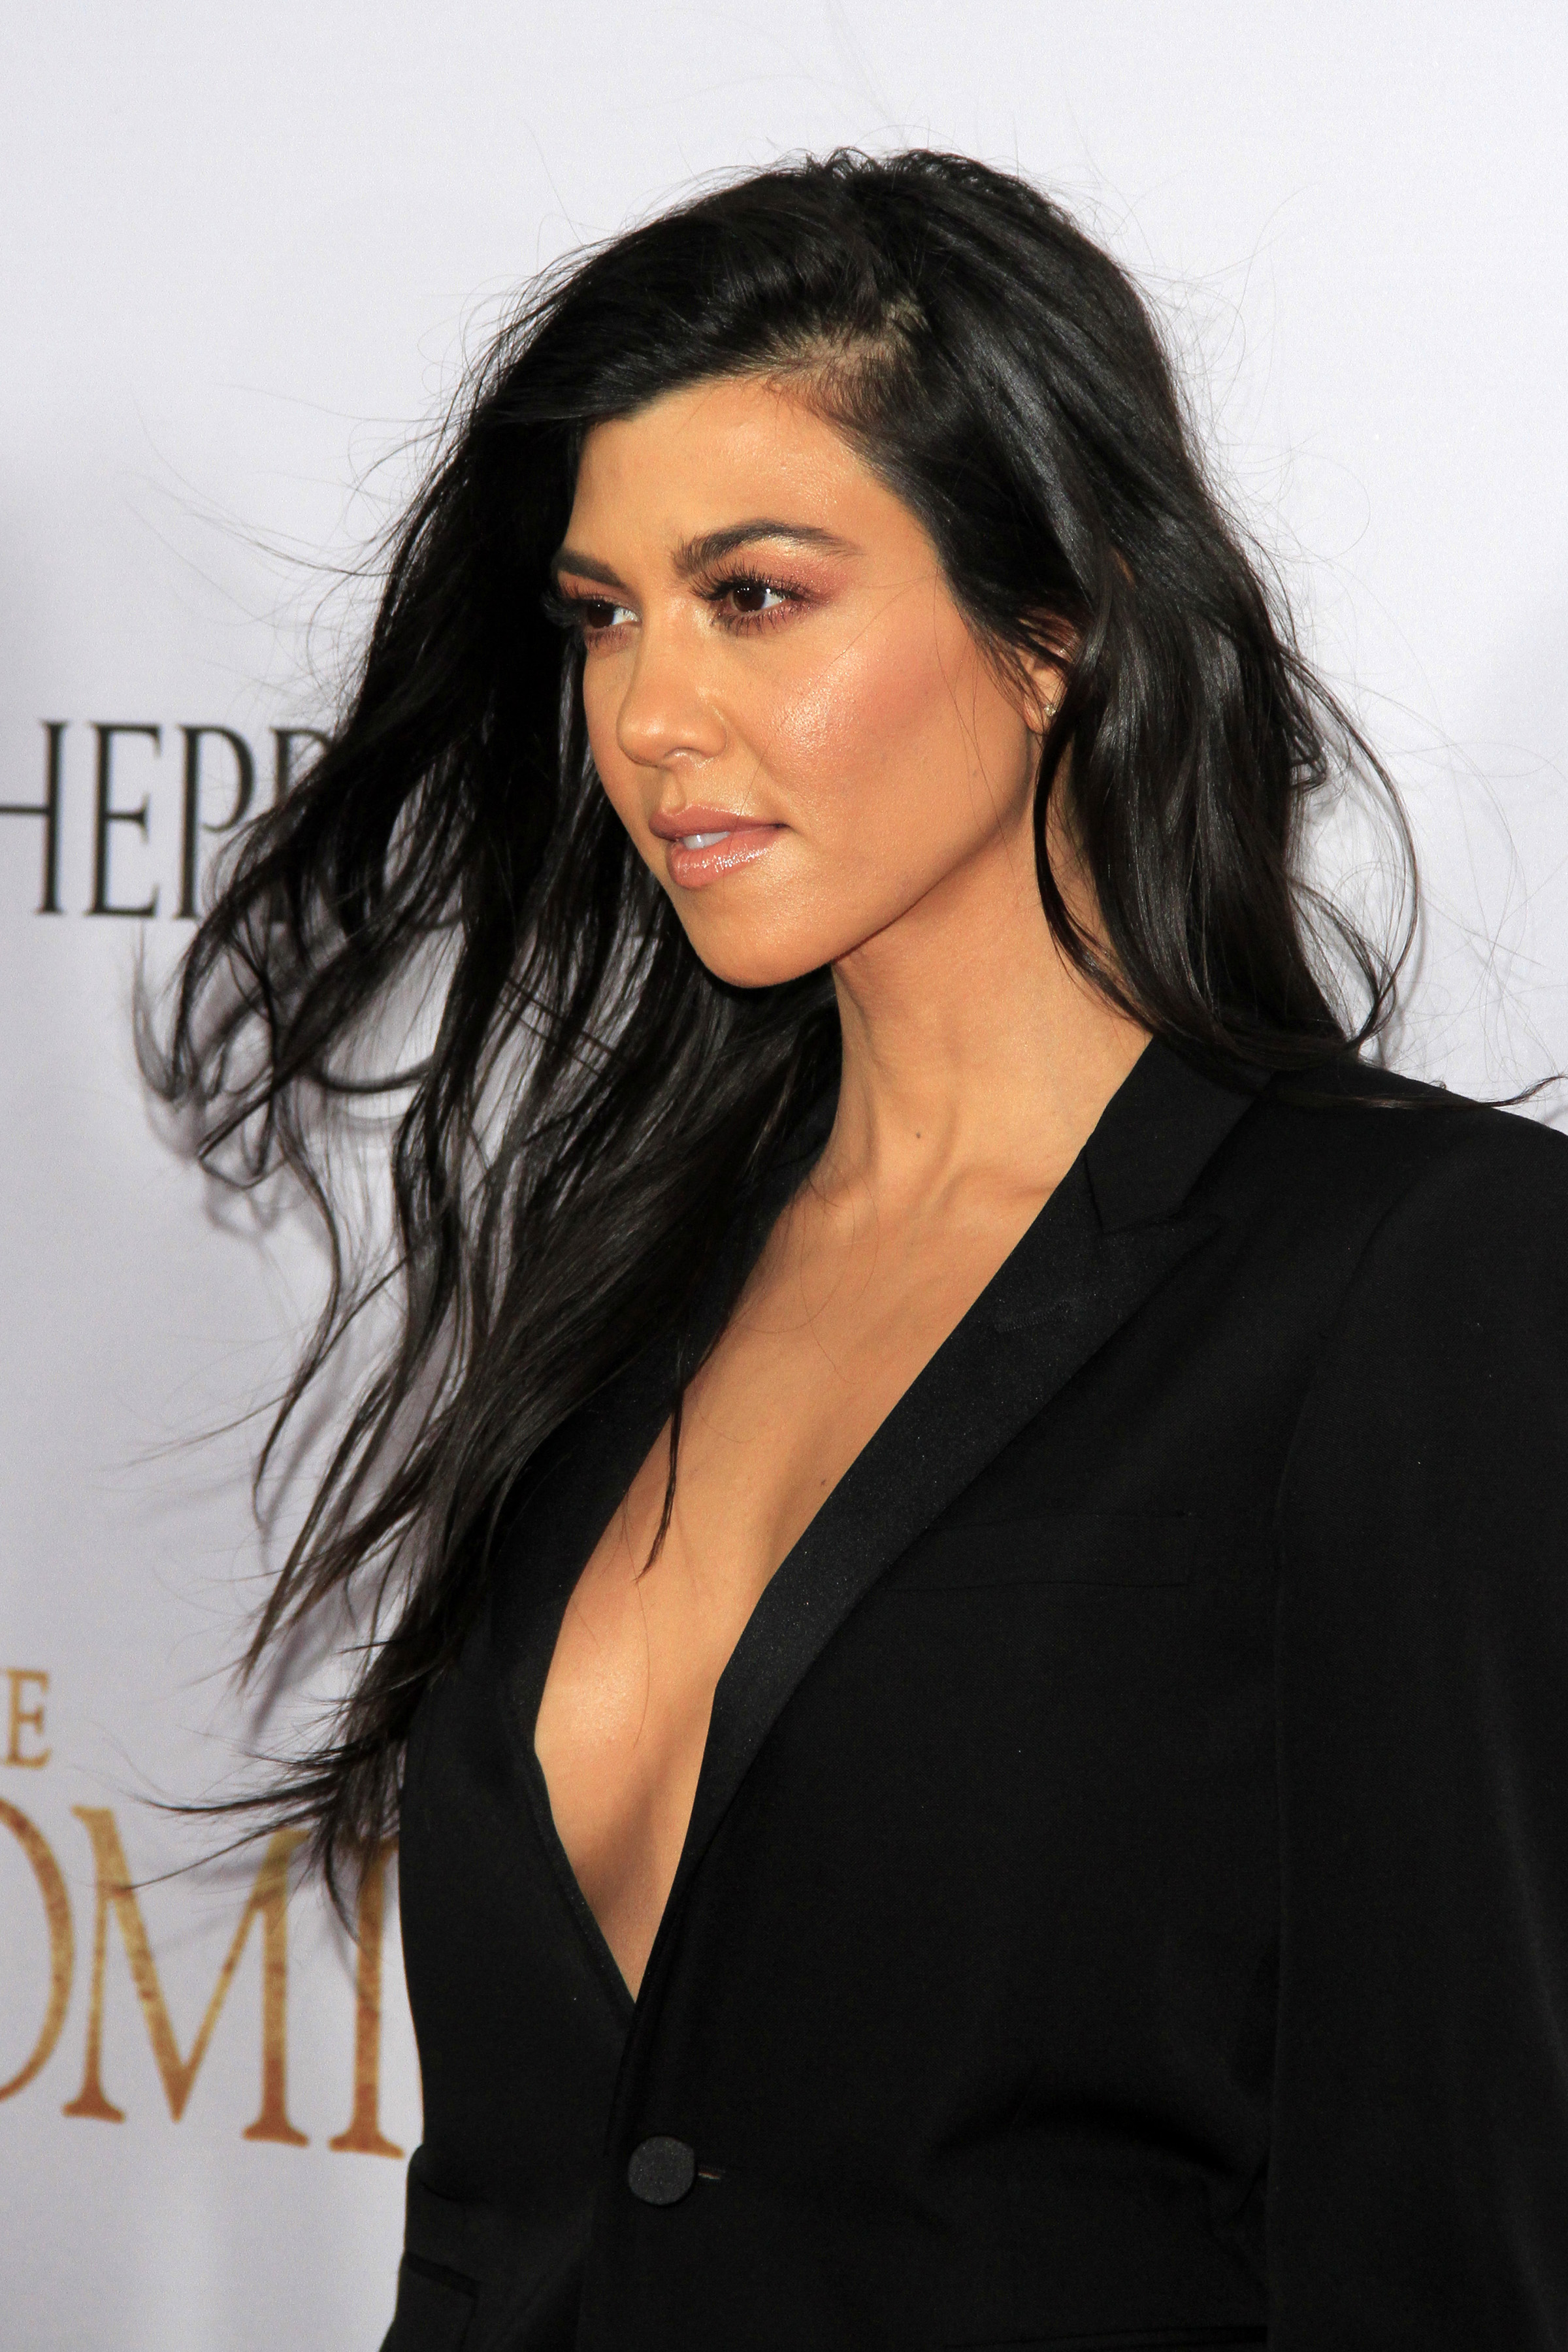 'The Promise' - Premiere - Arrivals  Featuring: Kourtney Kardashian Where: Los Angeles, California, United States When: 14 Apr 2017 Credit: Nicky Nelson/WENN.com